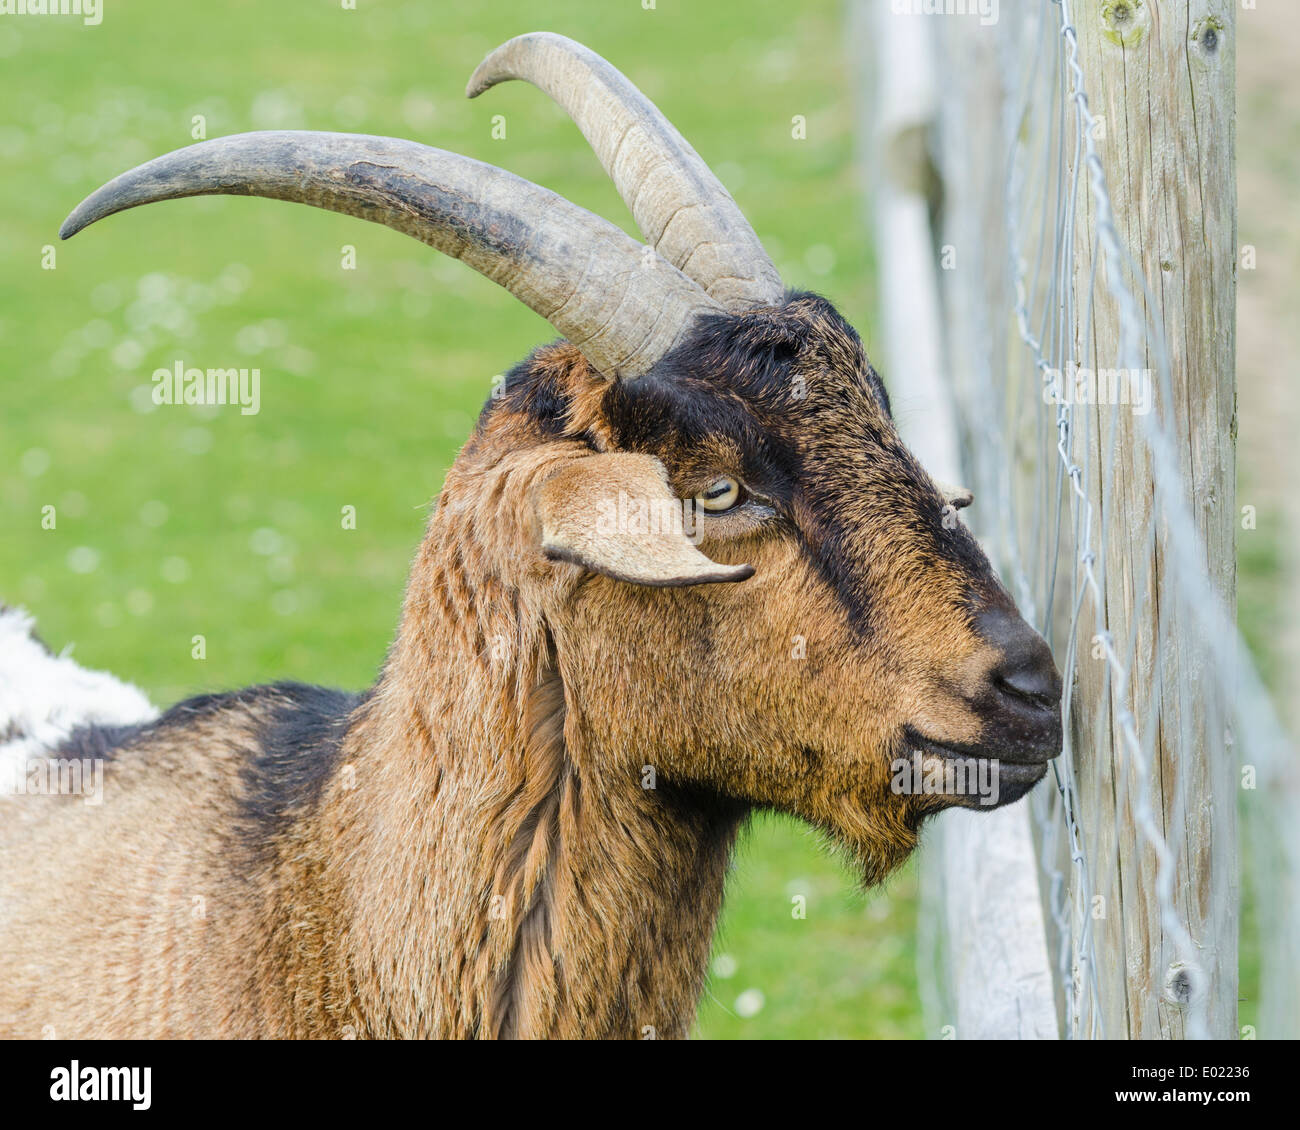 Head of a brown goat standing by a fence in a field. - Stock Image